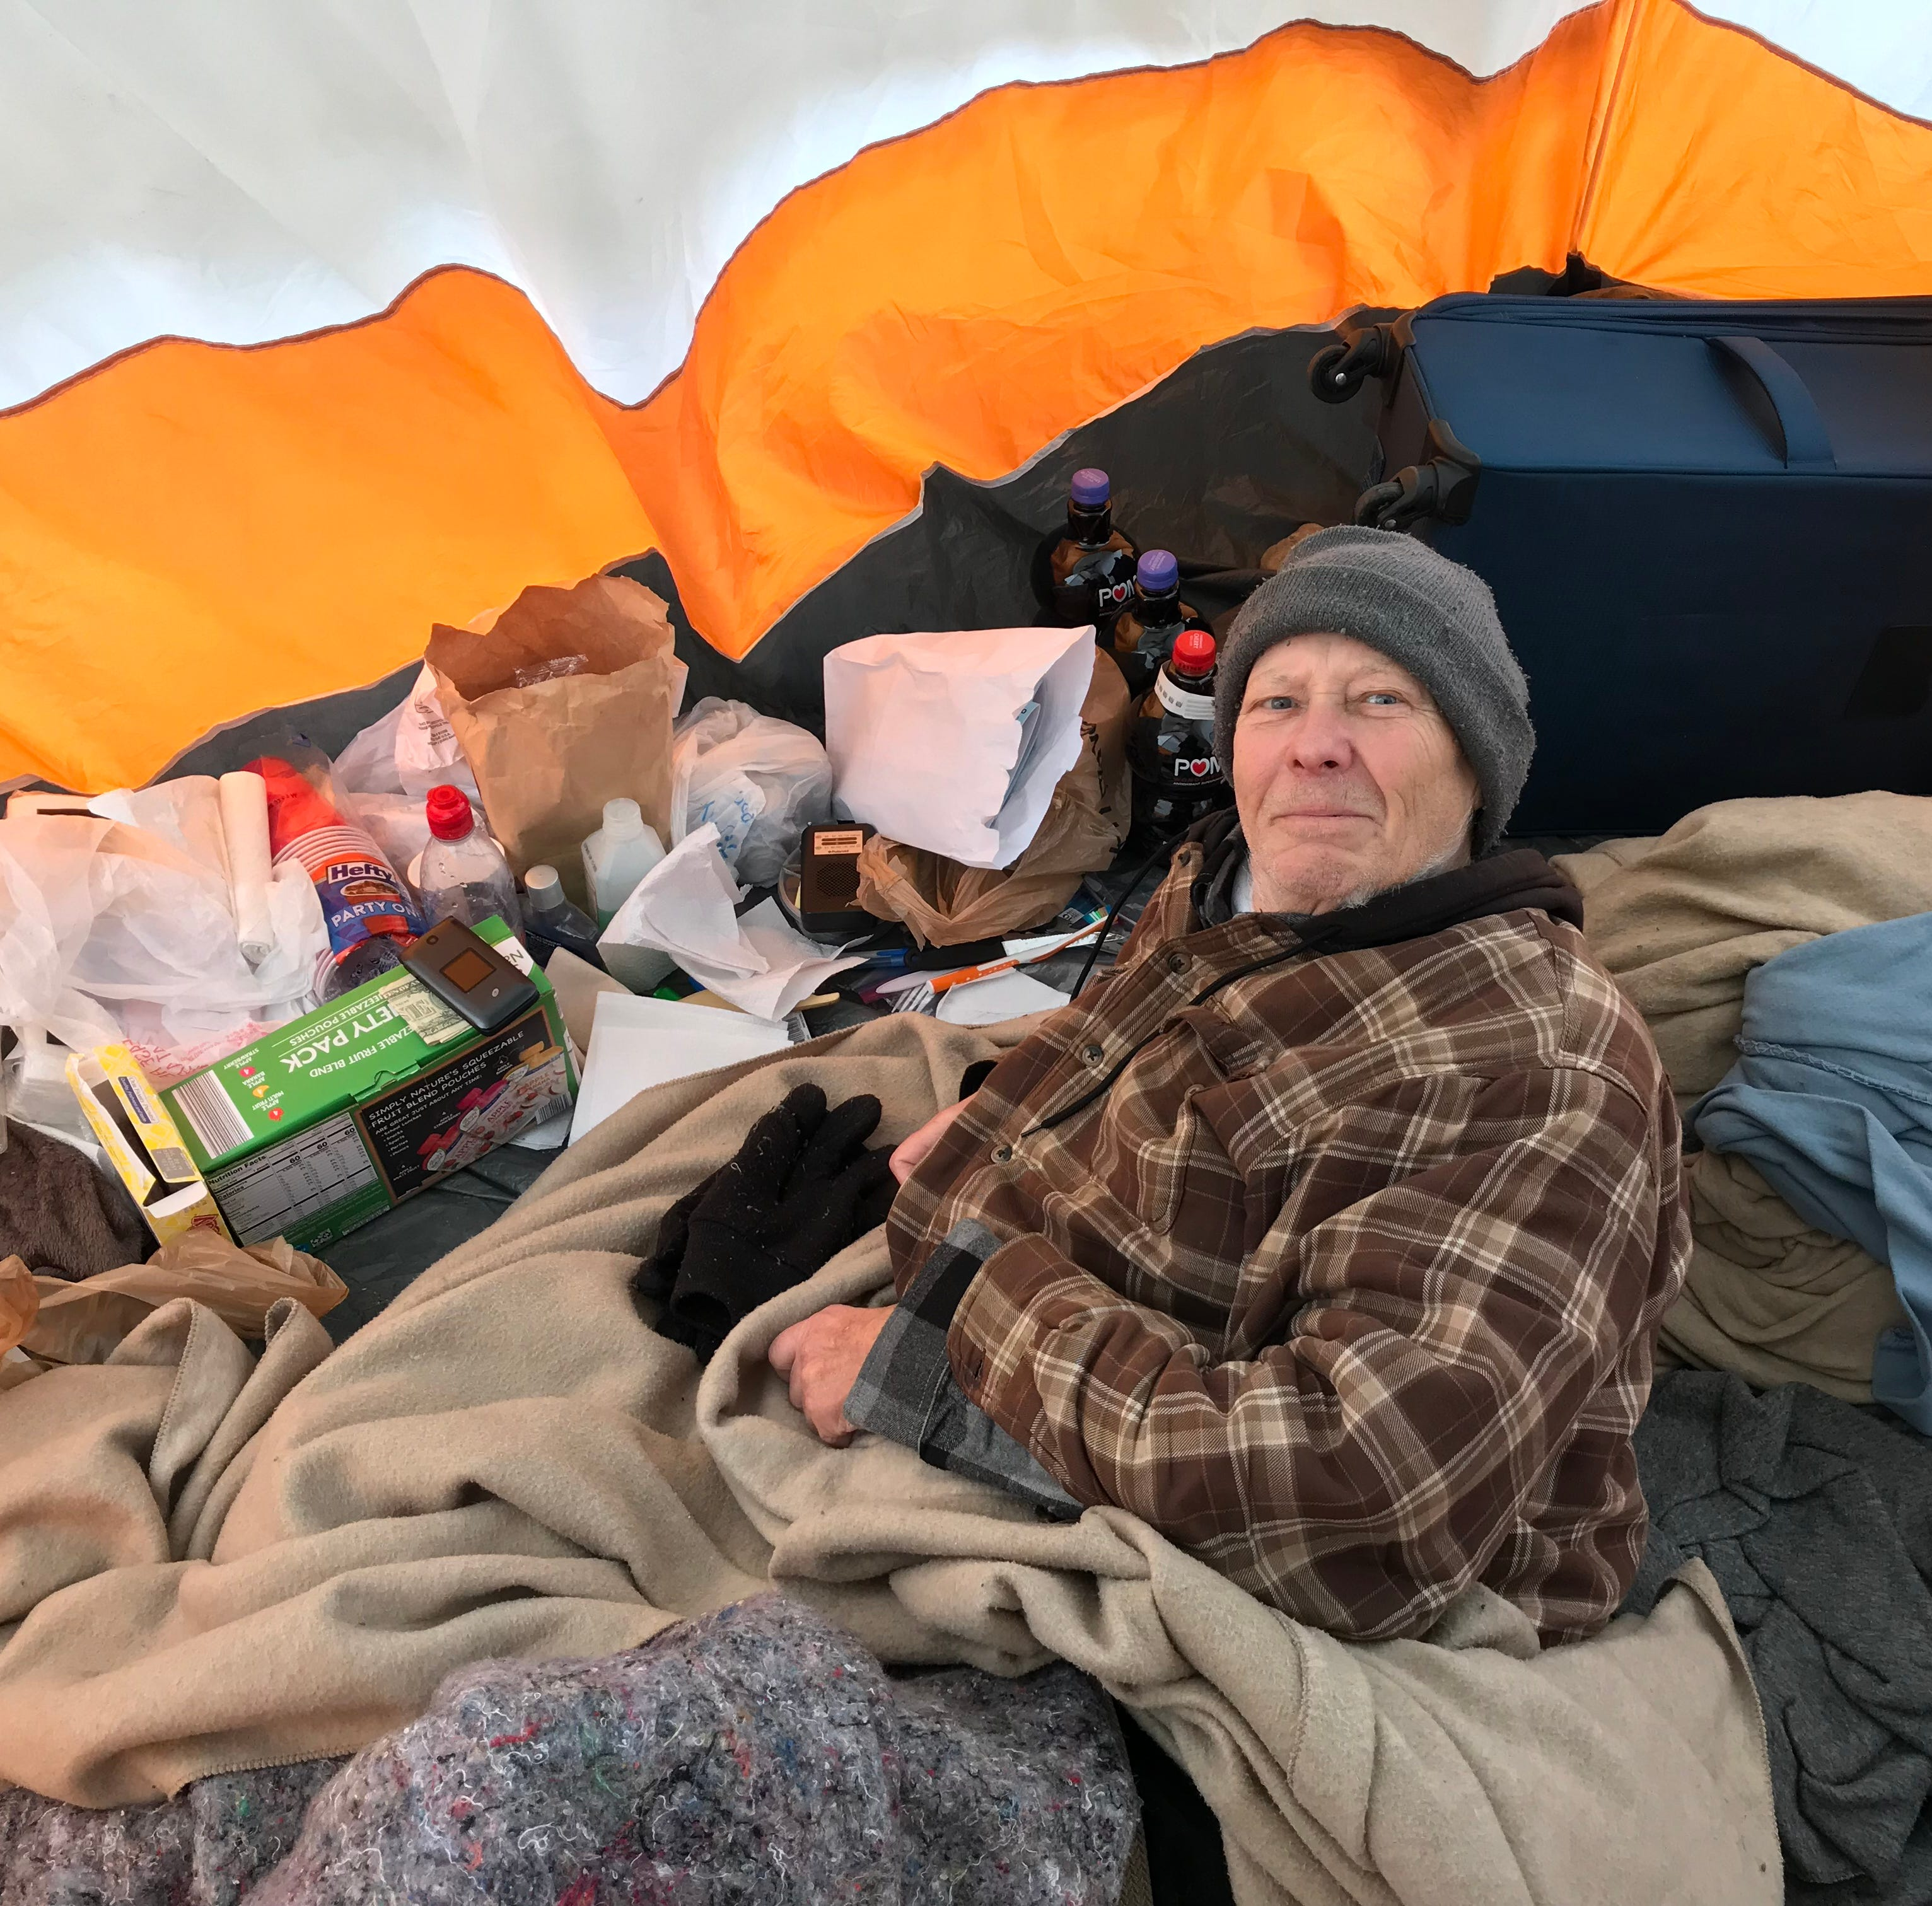 Homeless cancer patient in 'living hell' tries to make best of it in once-again sprawling 'Tent City'